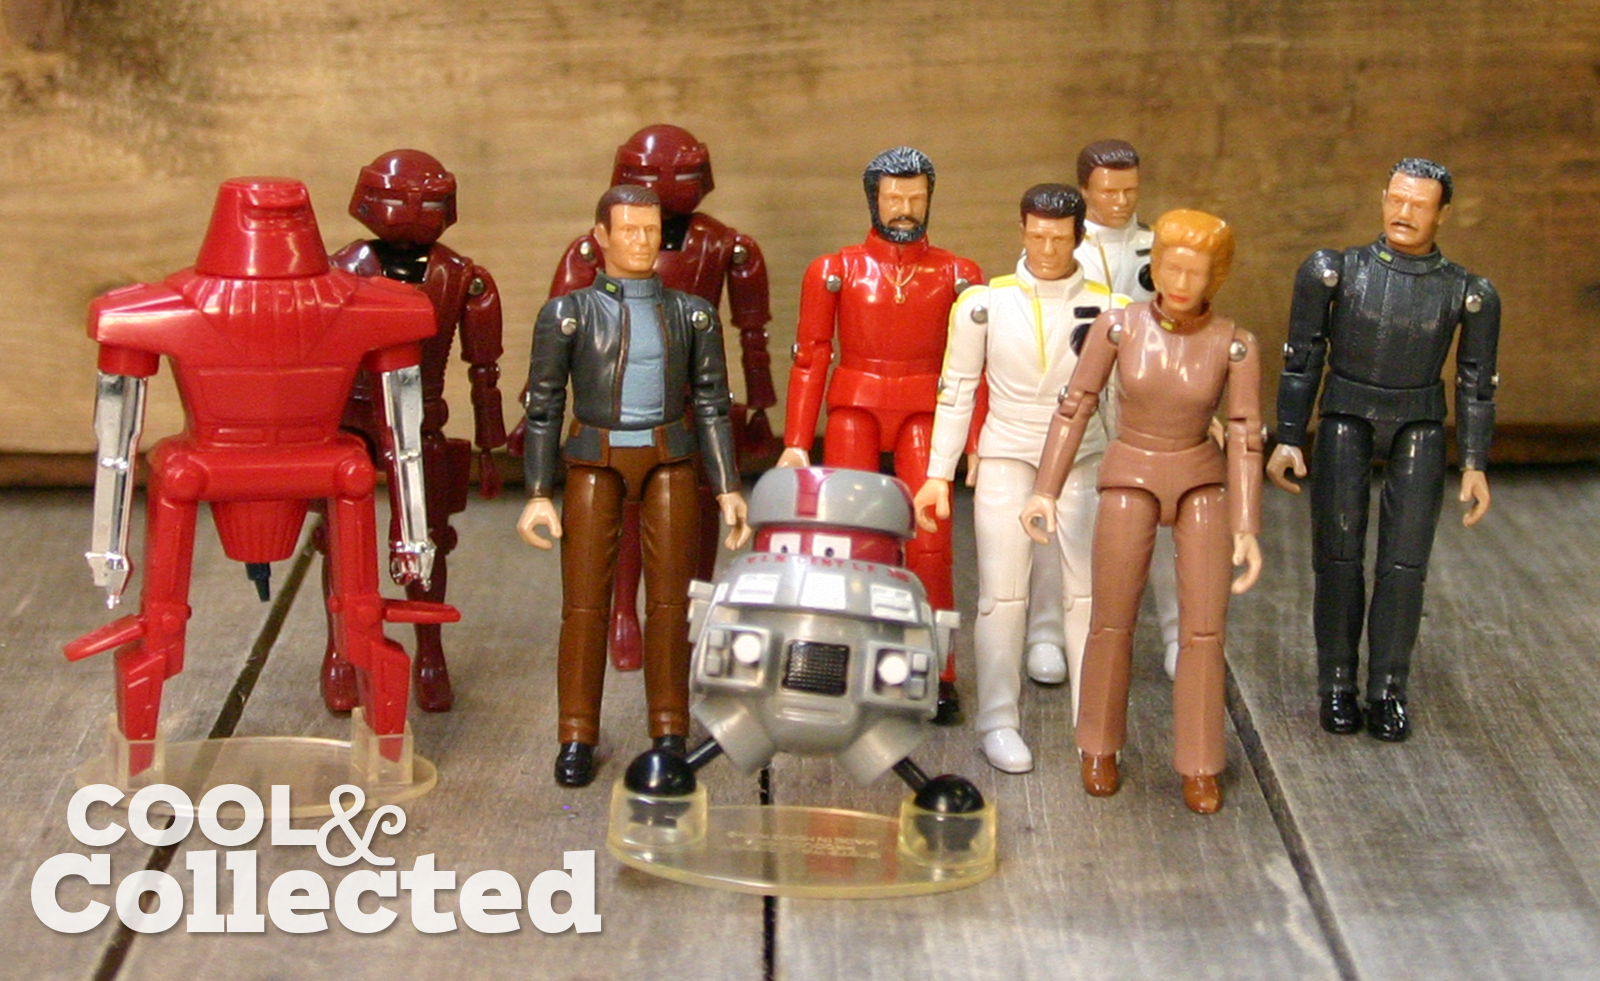 The Black Hole Action Figures